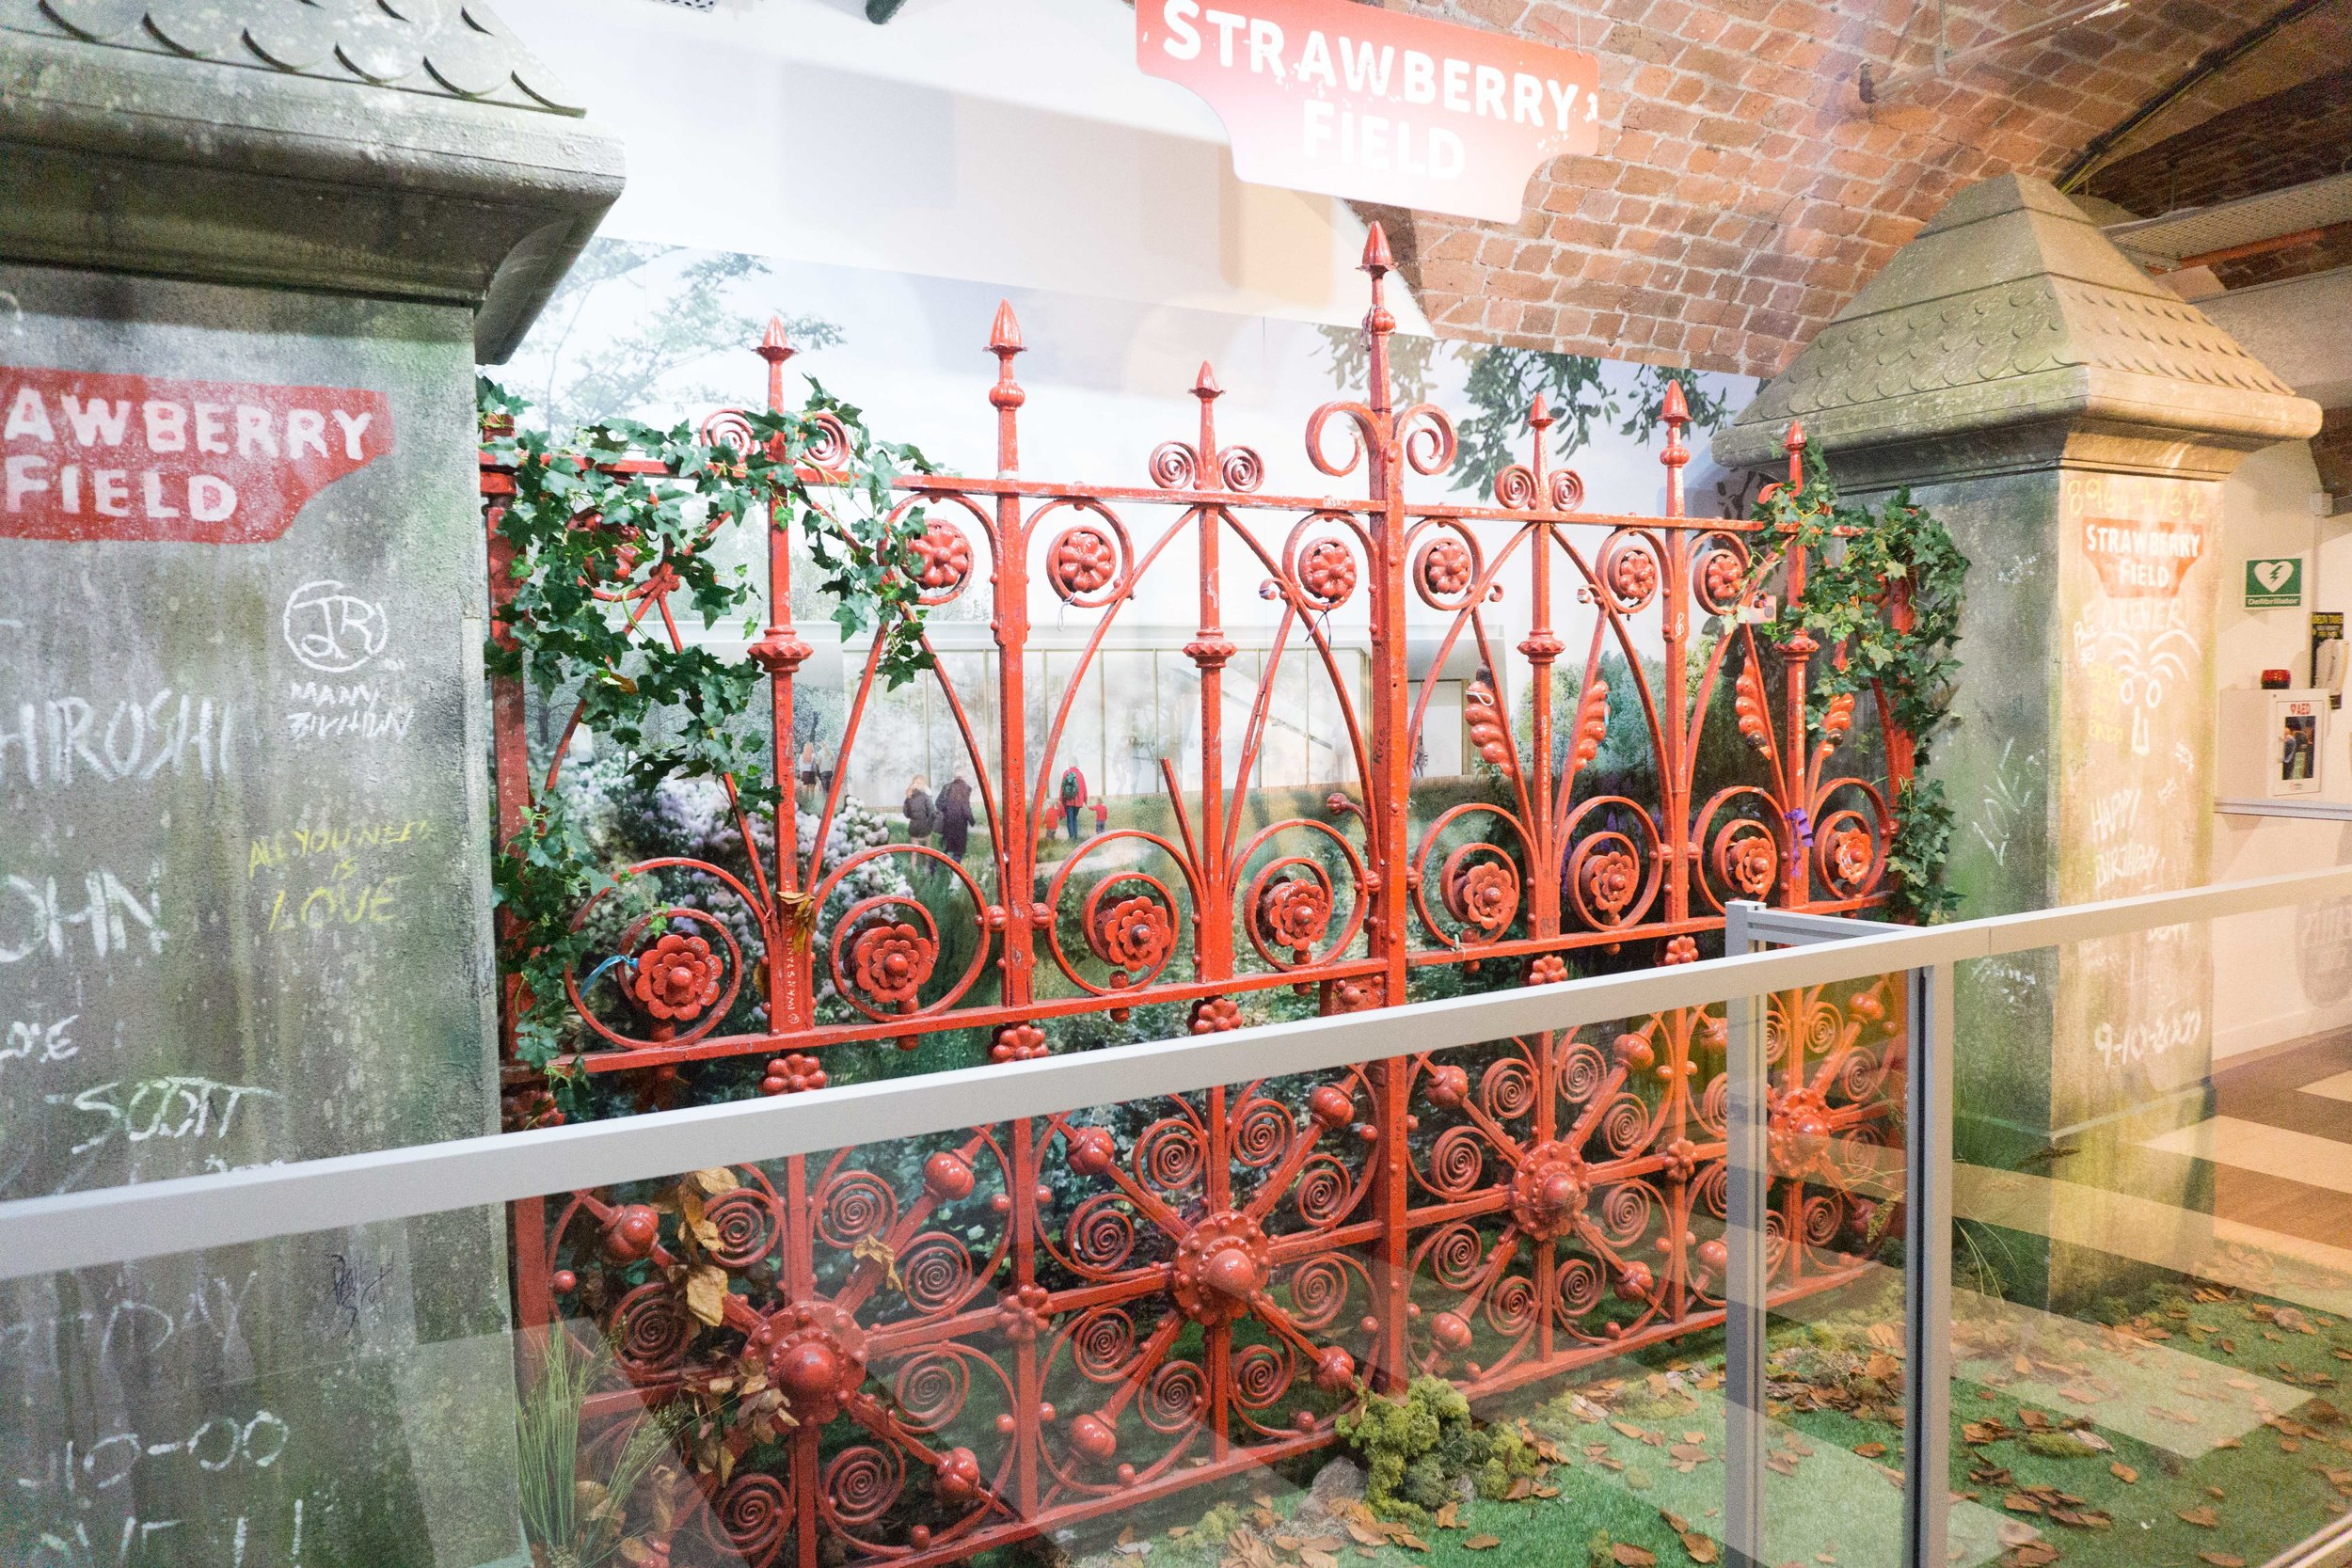 The real Strawberry Fields gate - an entryway to an orphanage John used to hang out at growing up